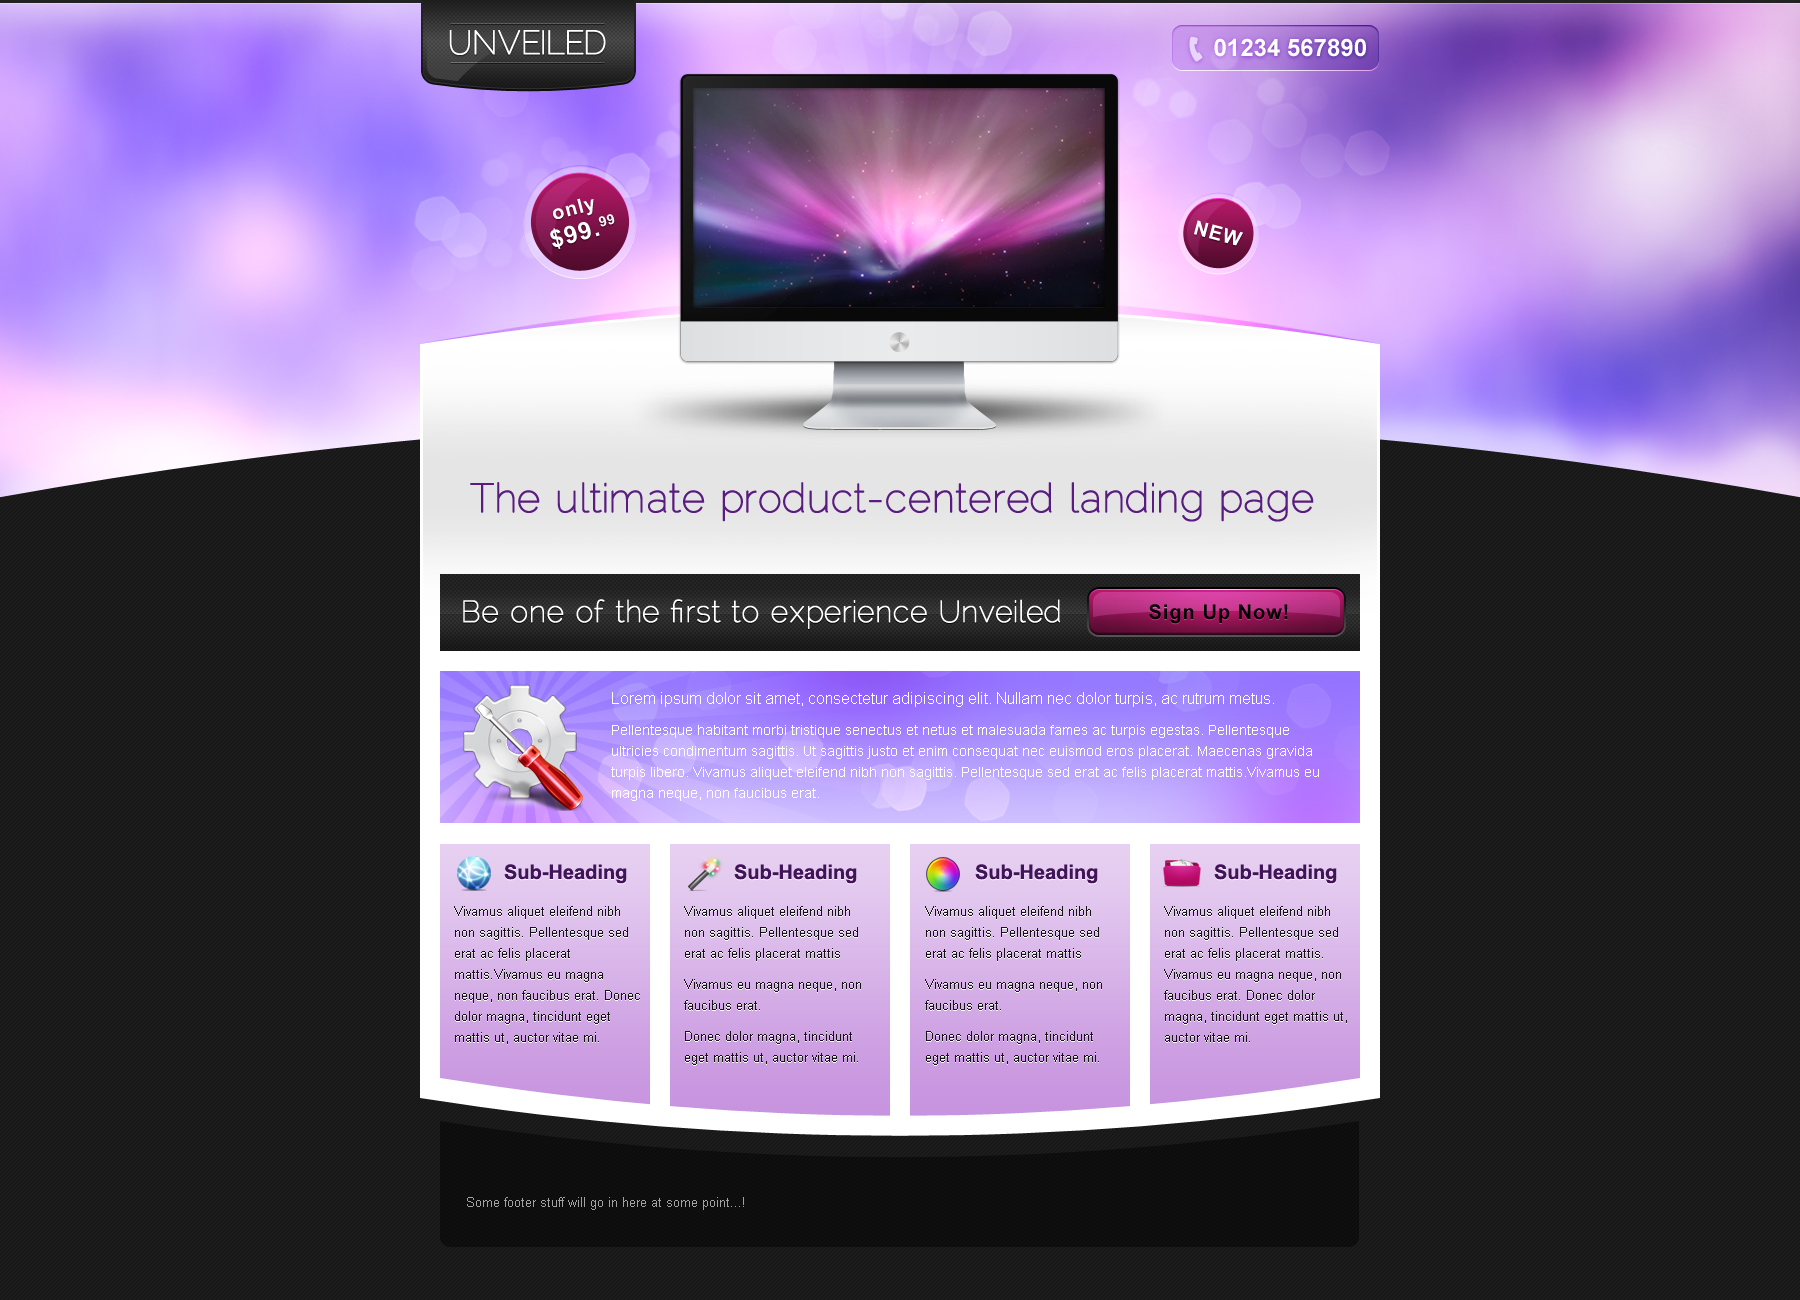 Unveiled - Ultimate Product Focused Landing Page - This is the third of 4 themes, in various shades of purple and pink. It is aimed at promoting software or services.